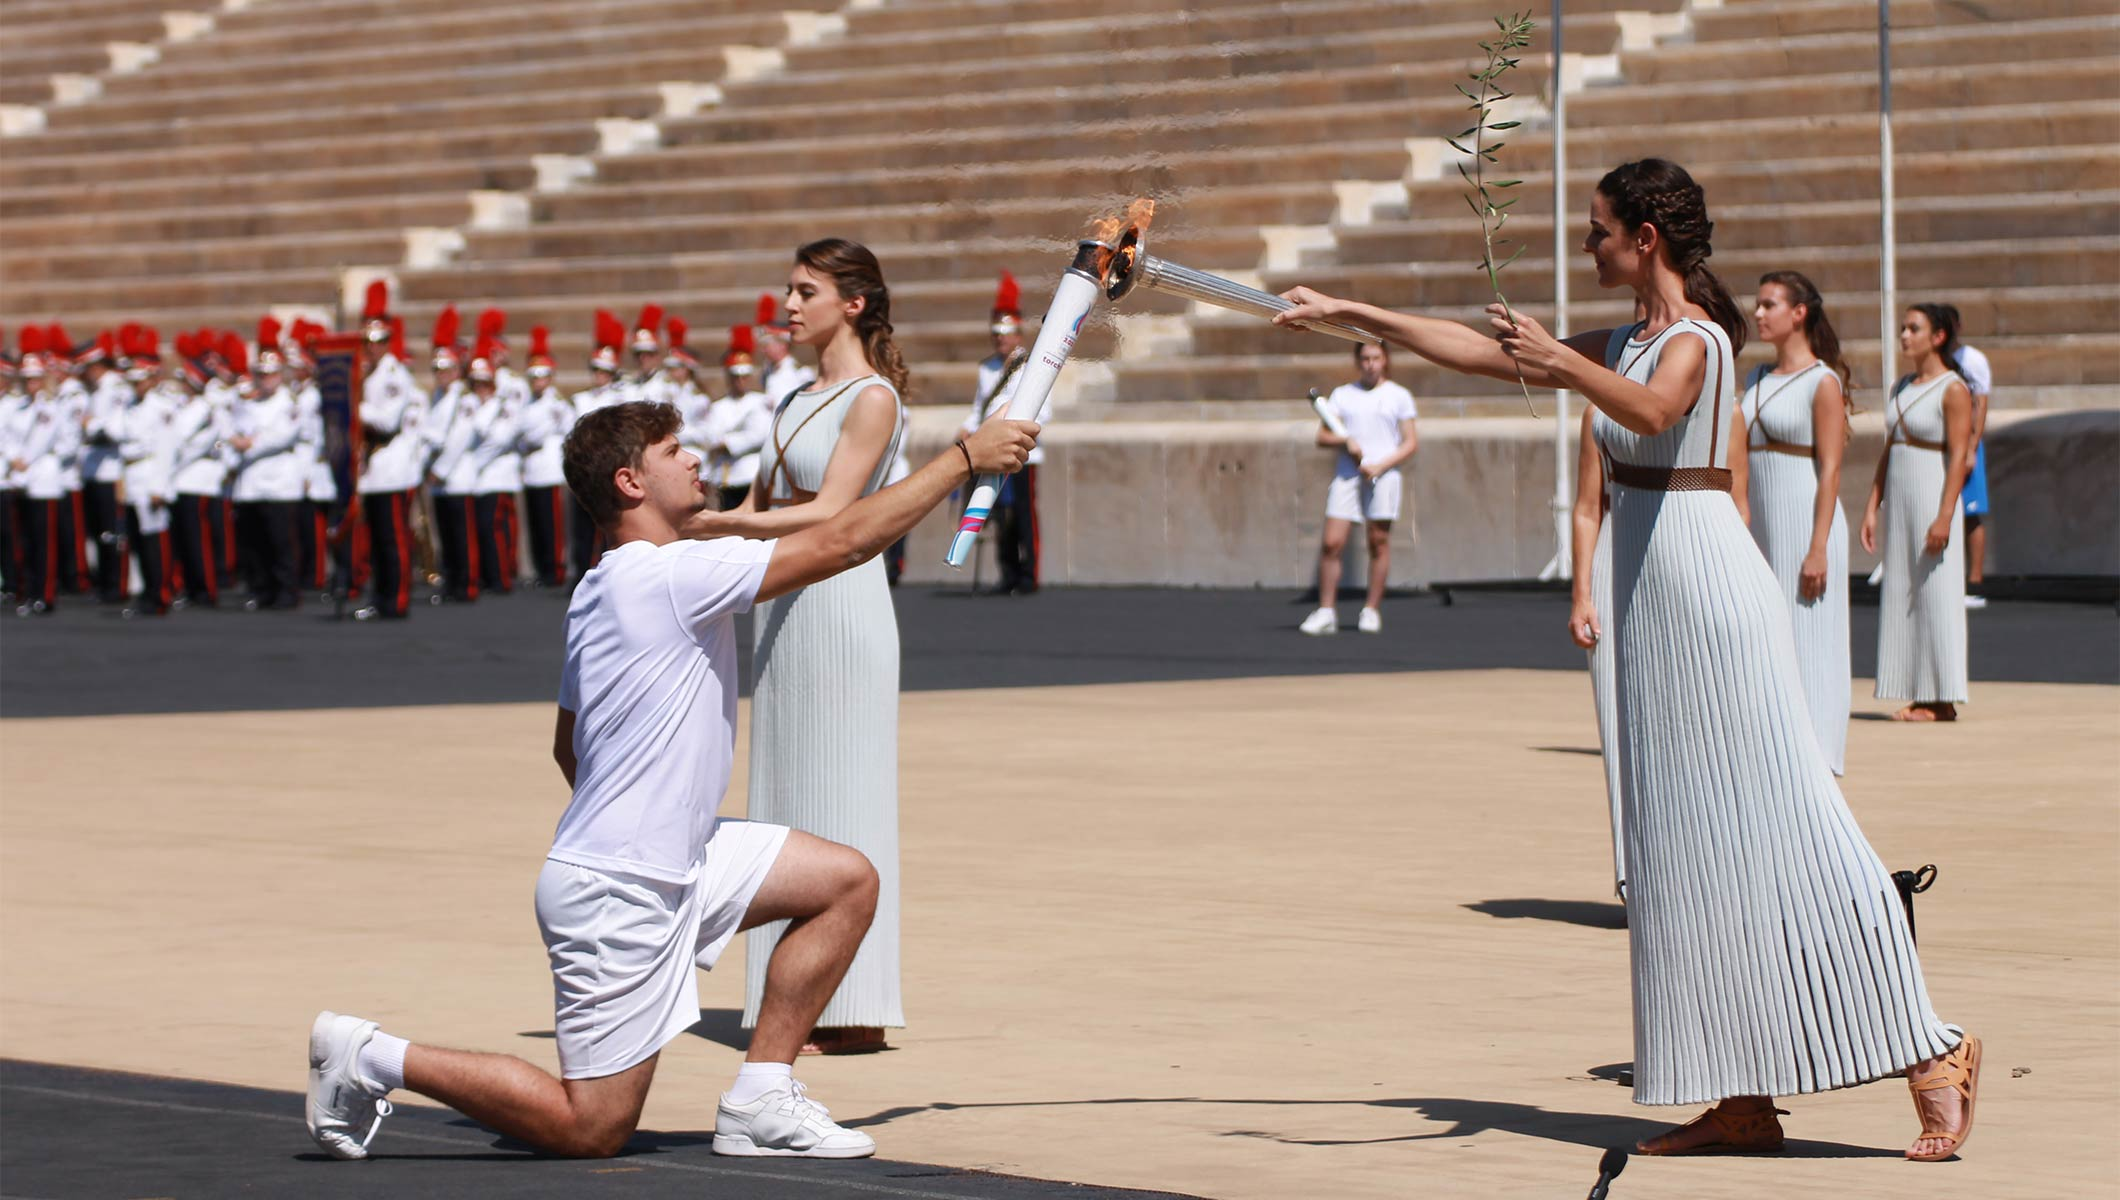 Lausanne 2020 Youth Olympic flame lit in Athens